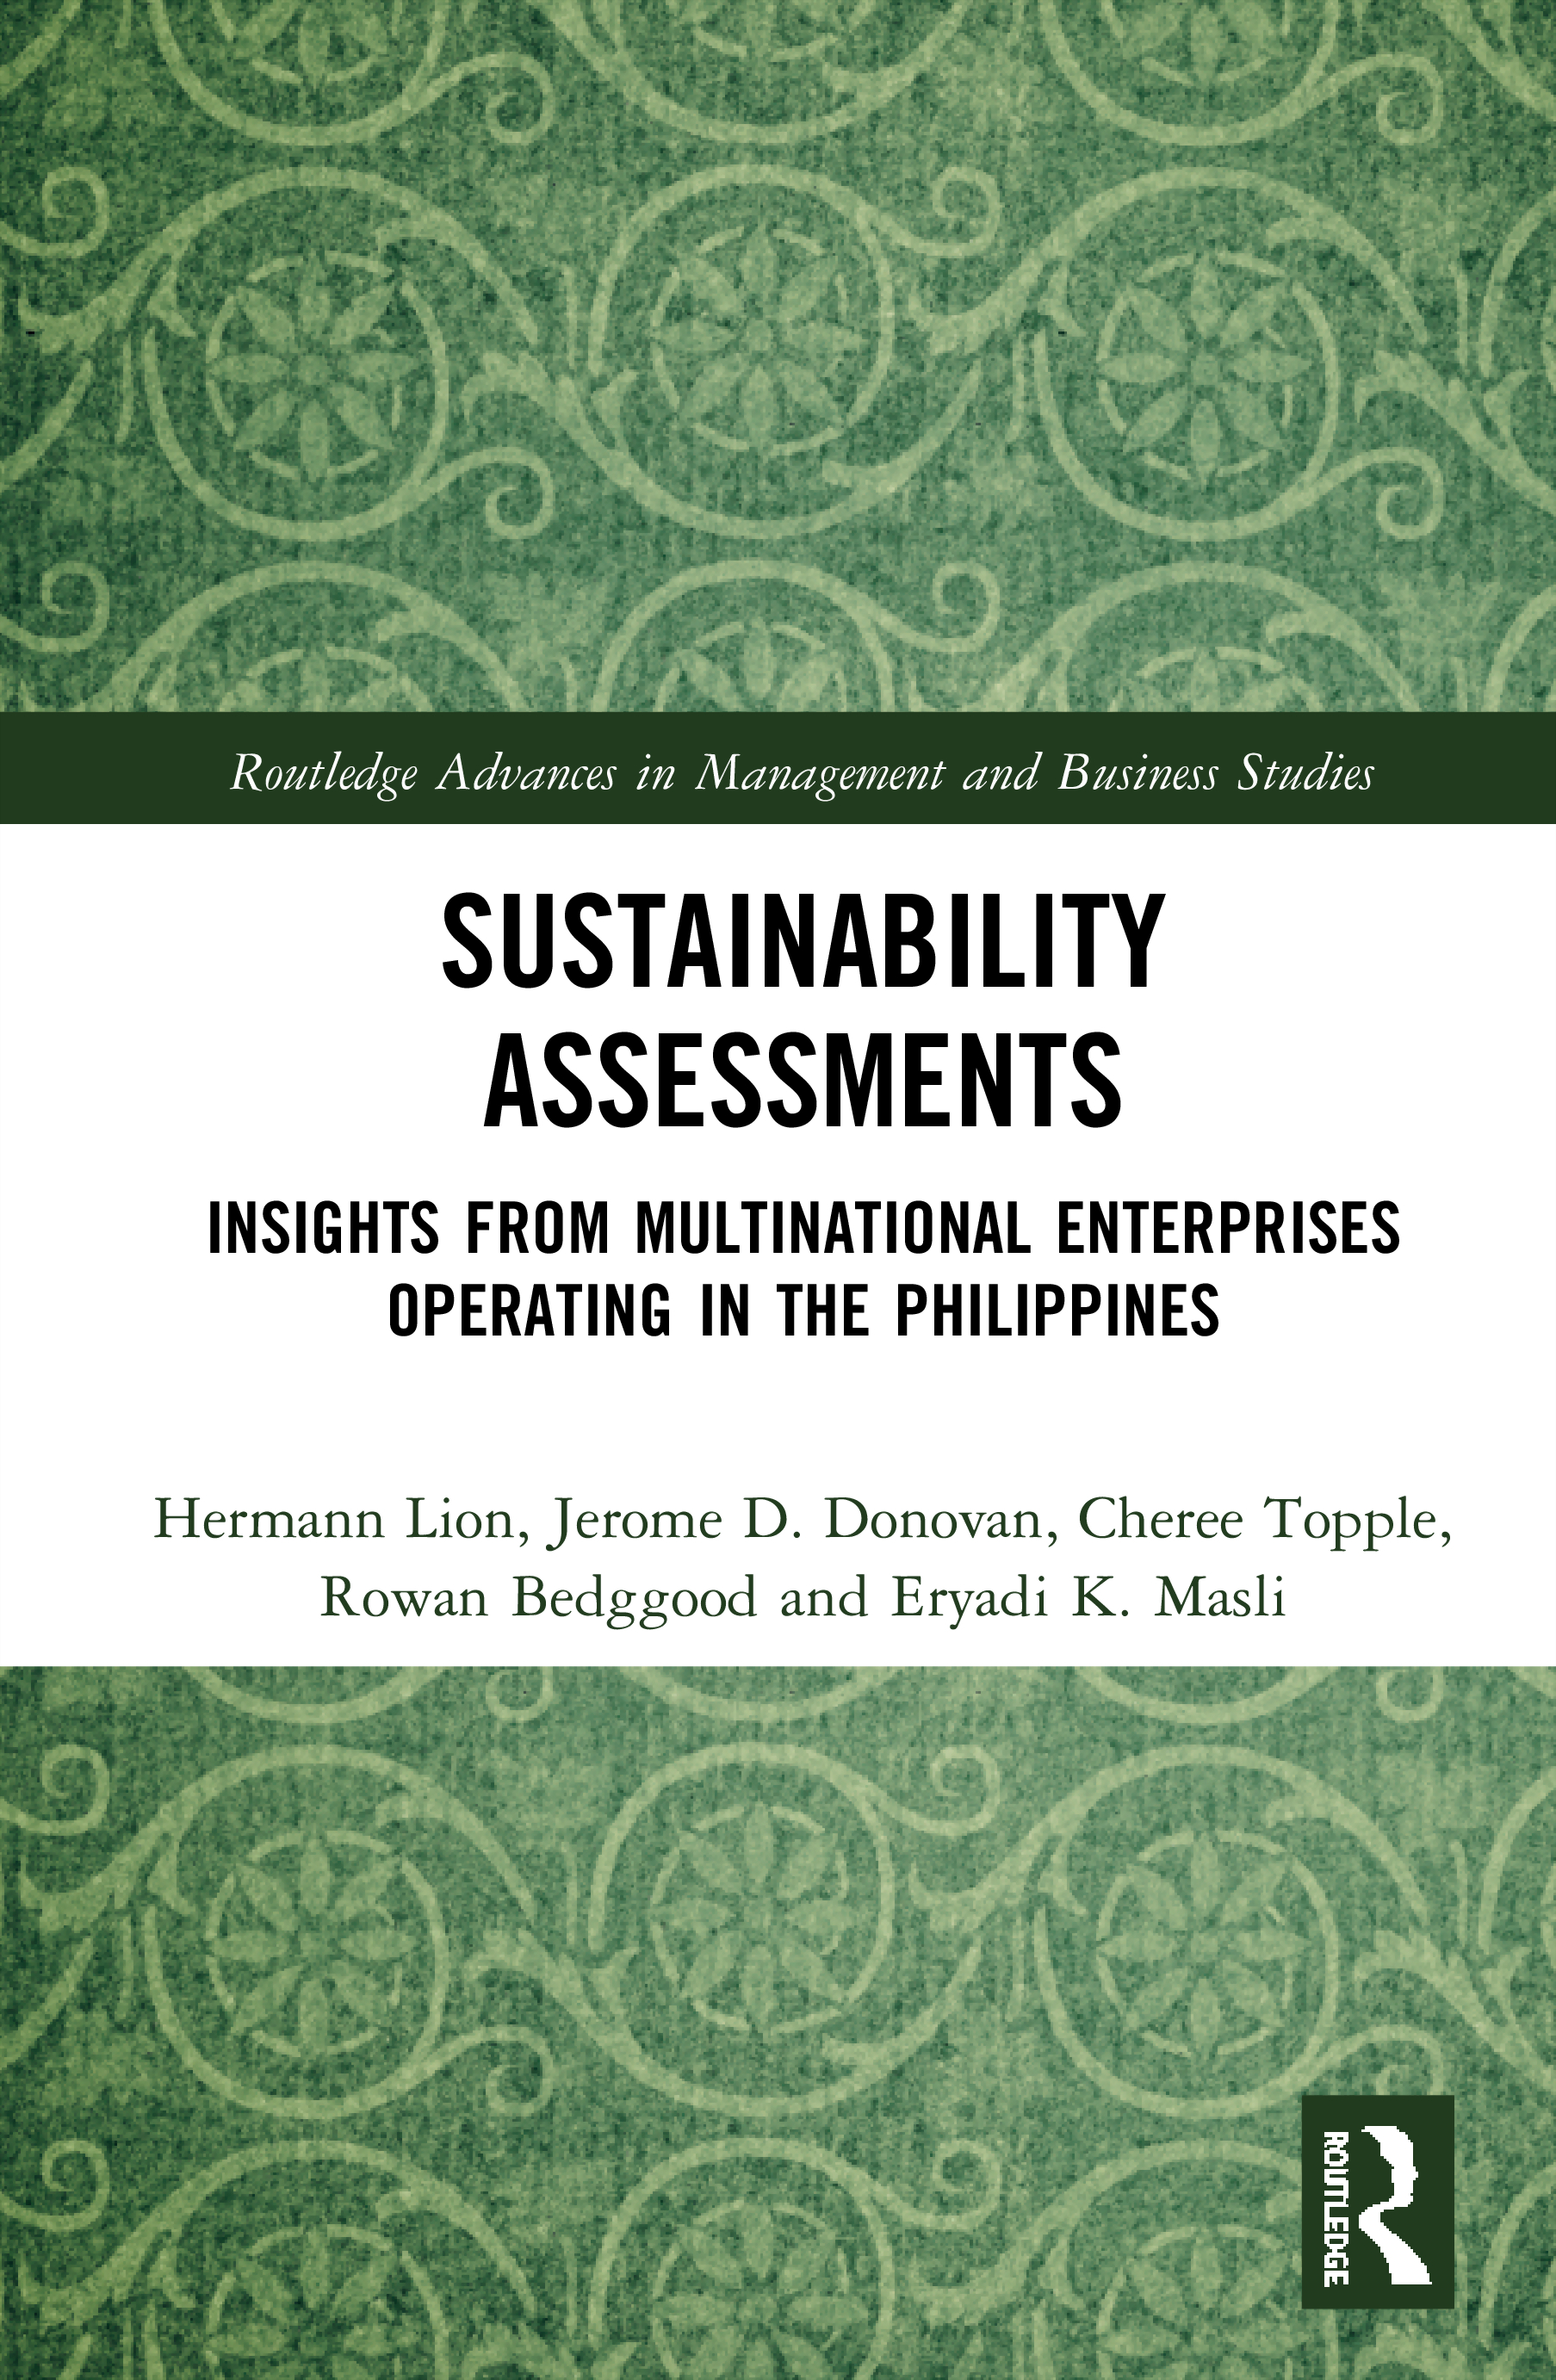 Sustainability Assessments: Insights from multinational enterprises operating in the Philippines book cover